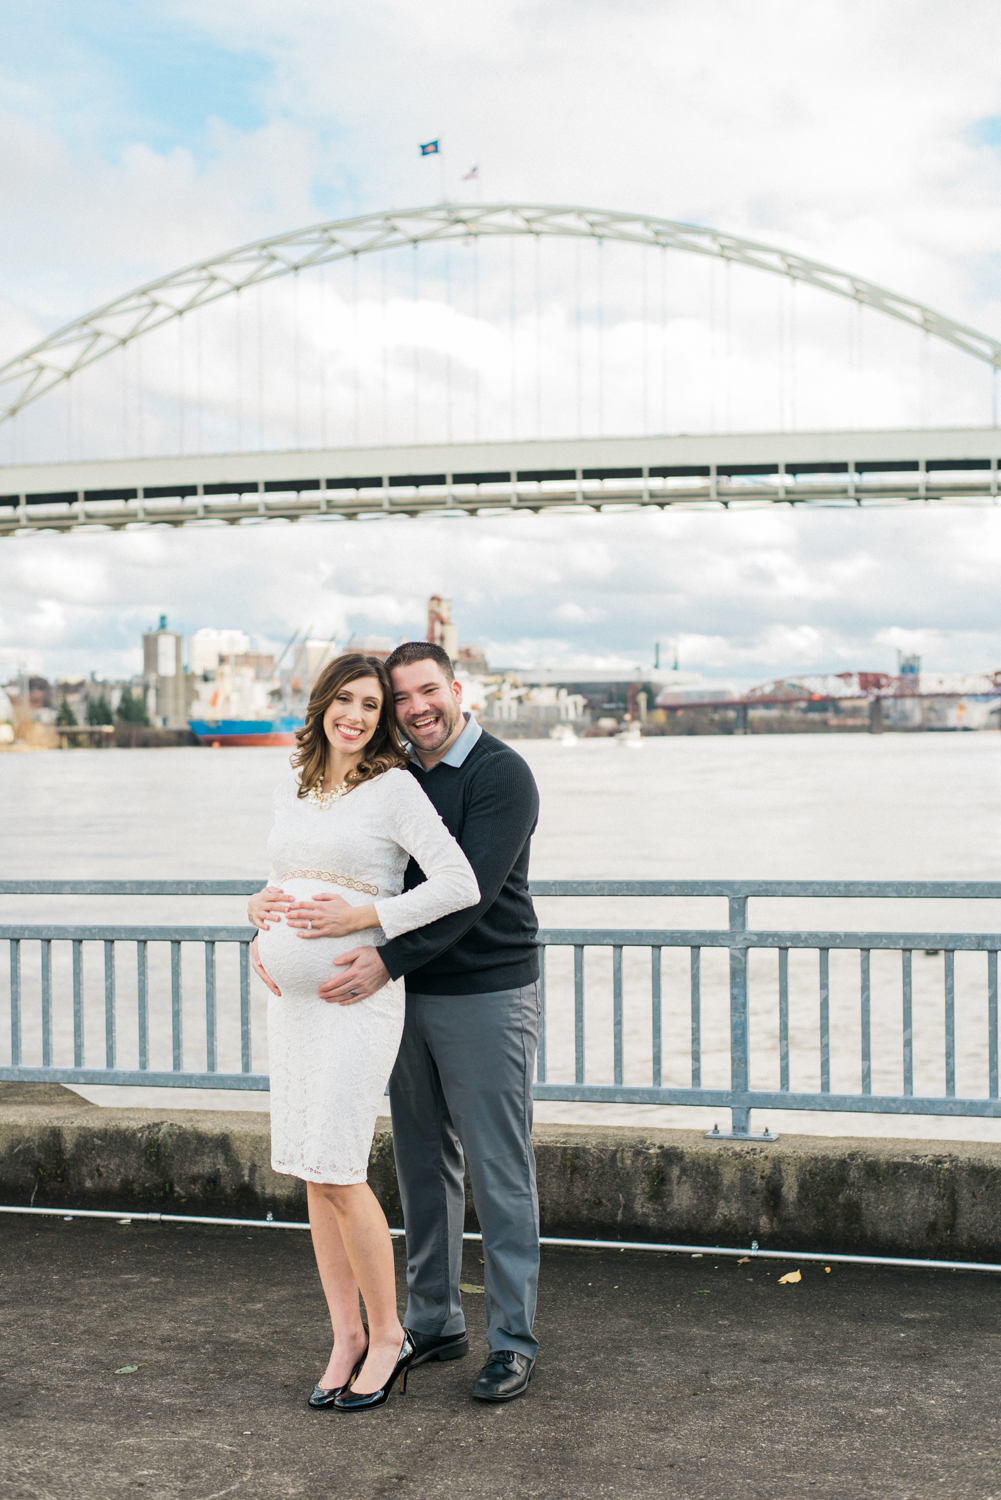 portland-maternity-photographer-fremont-bridge-shelley-marie-photo-2